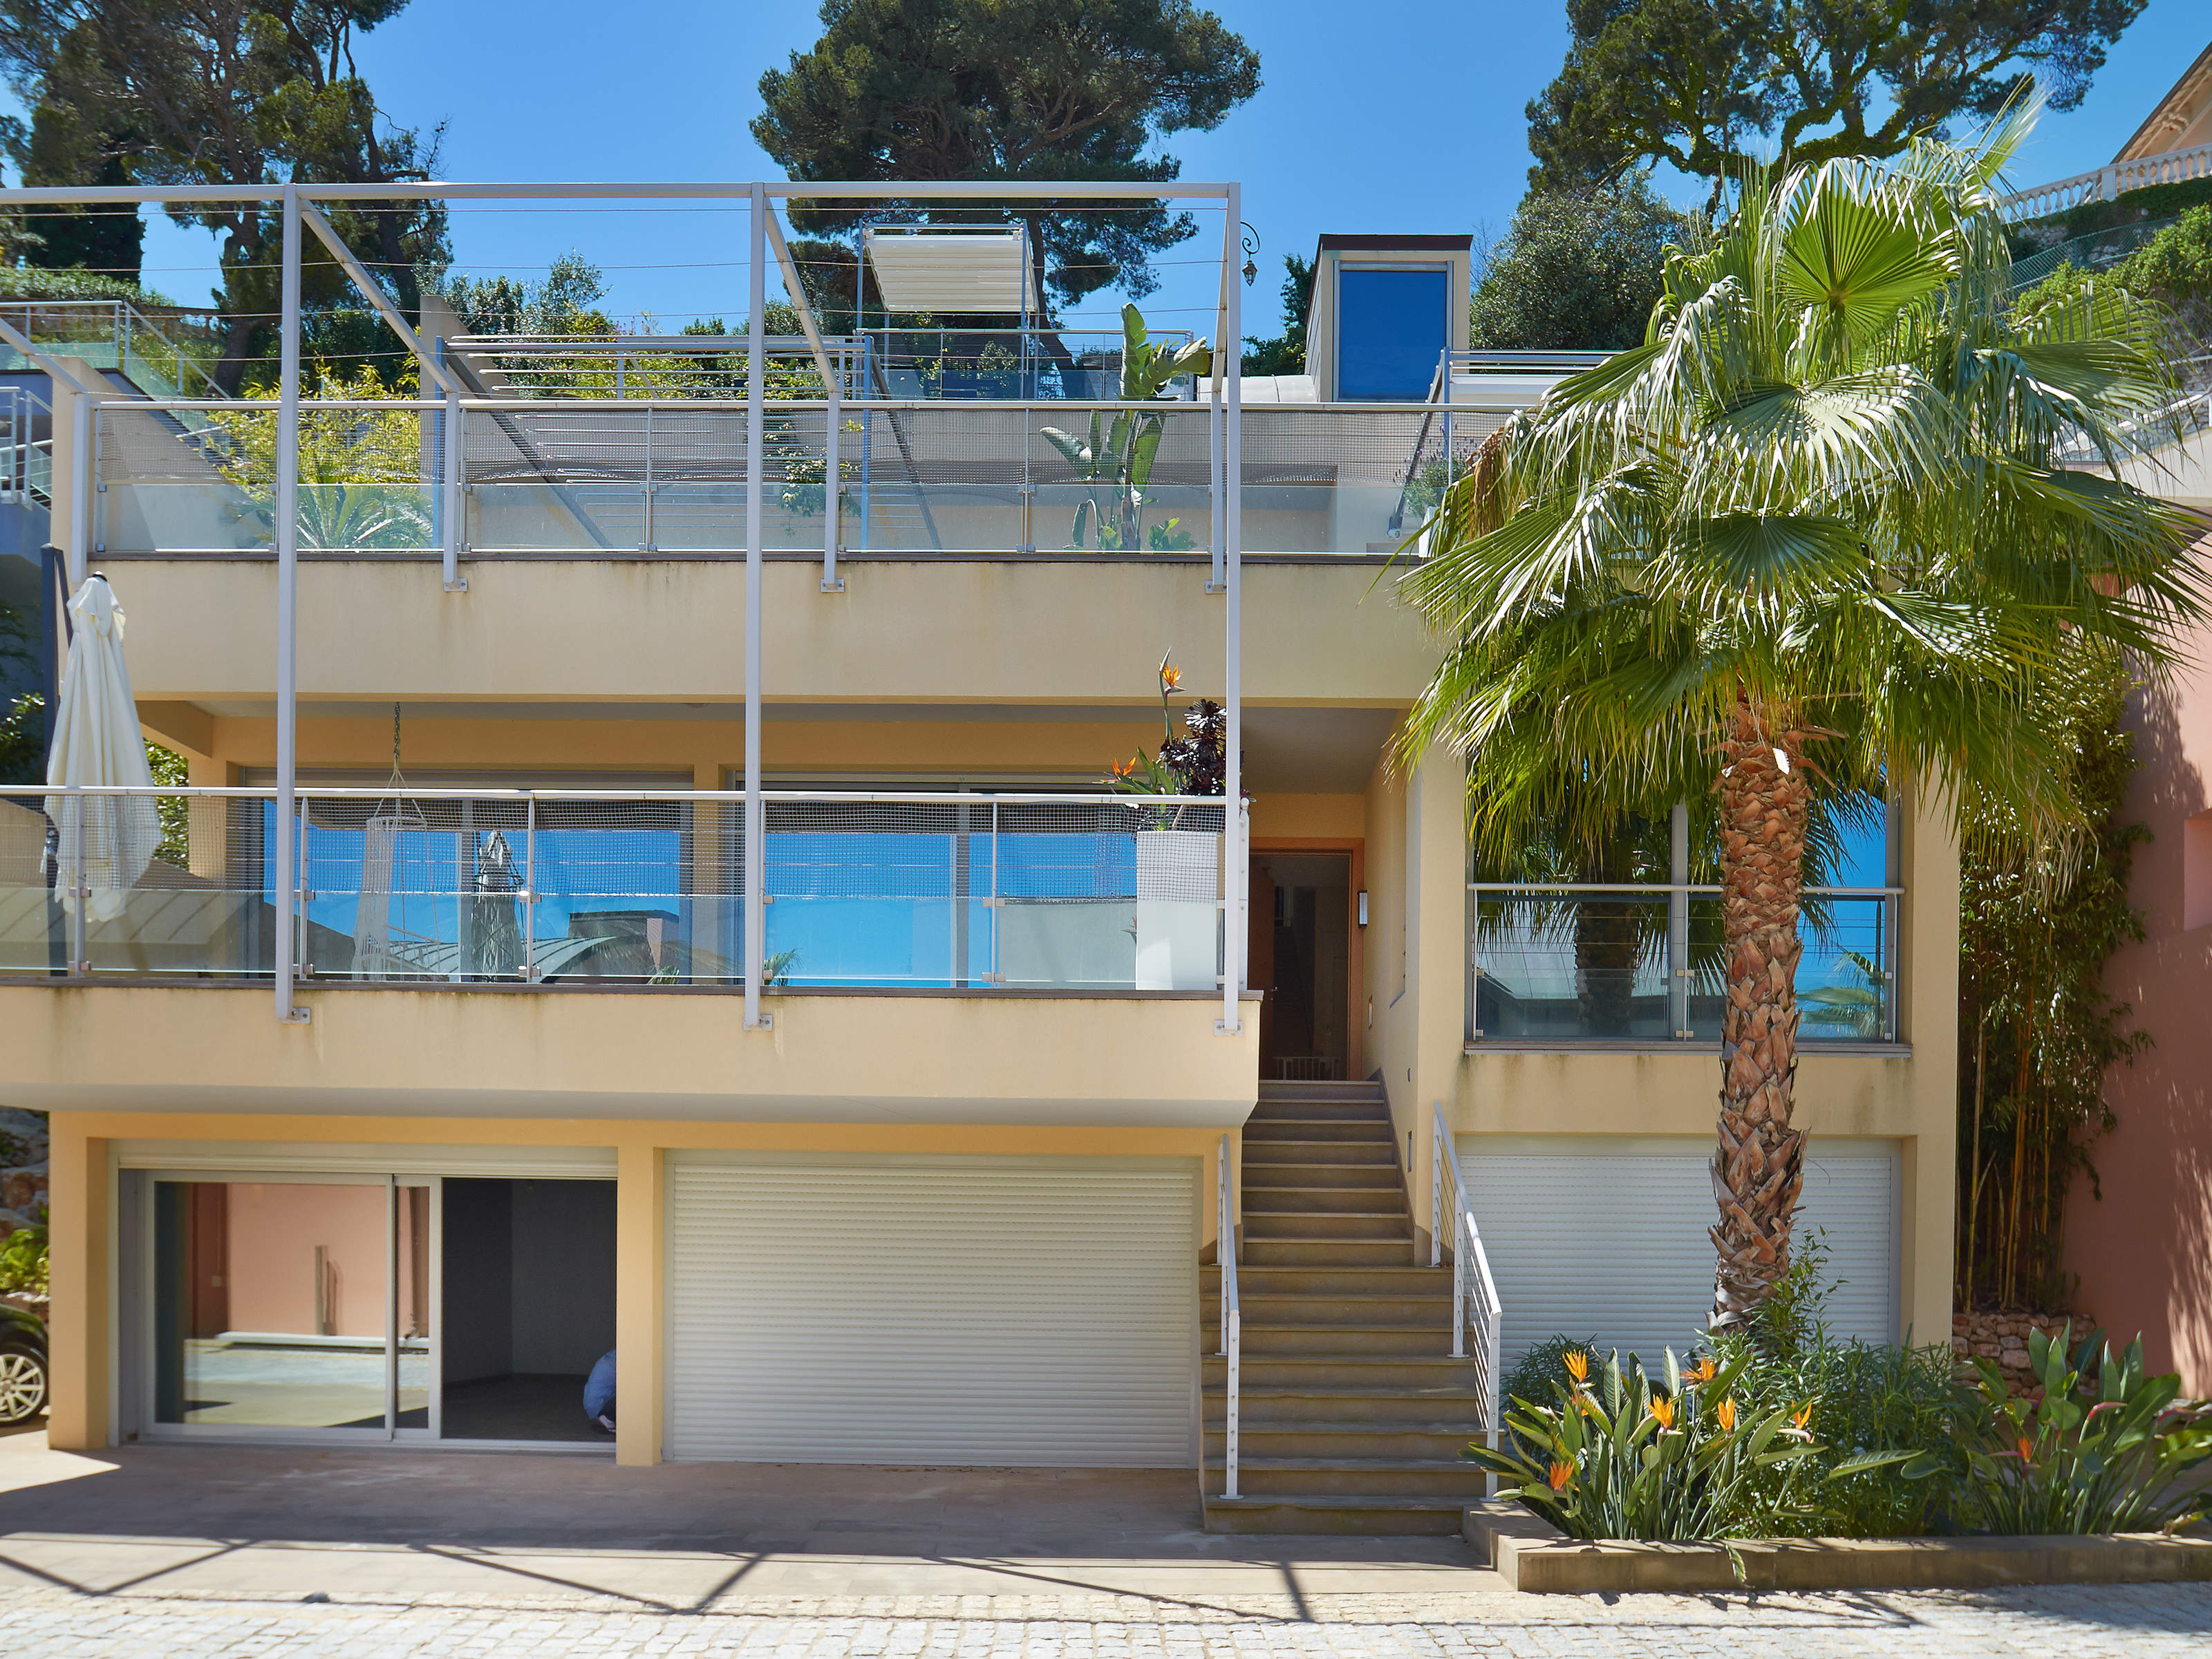 단독 가정 주택 용 임대 에 Contemporary design villa in the heart of Saint Jean Cap Ferrat Saint Jean Cap Ferrat, 프로벤스 앞ㄹ프스 코테 D'Azur 06230 프랑스